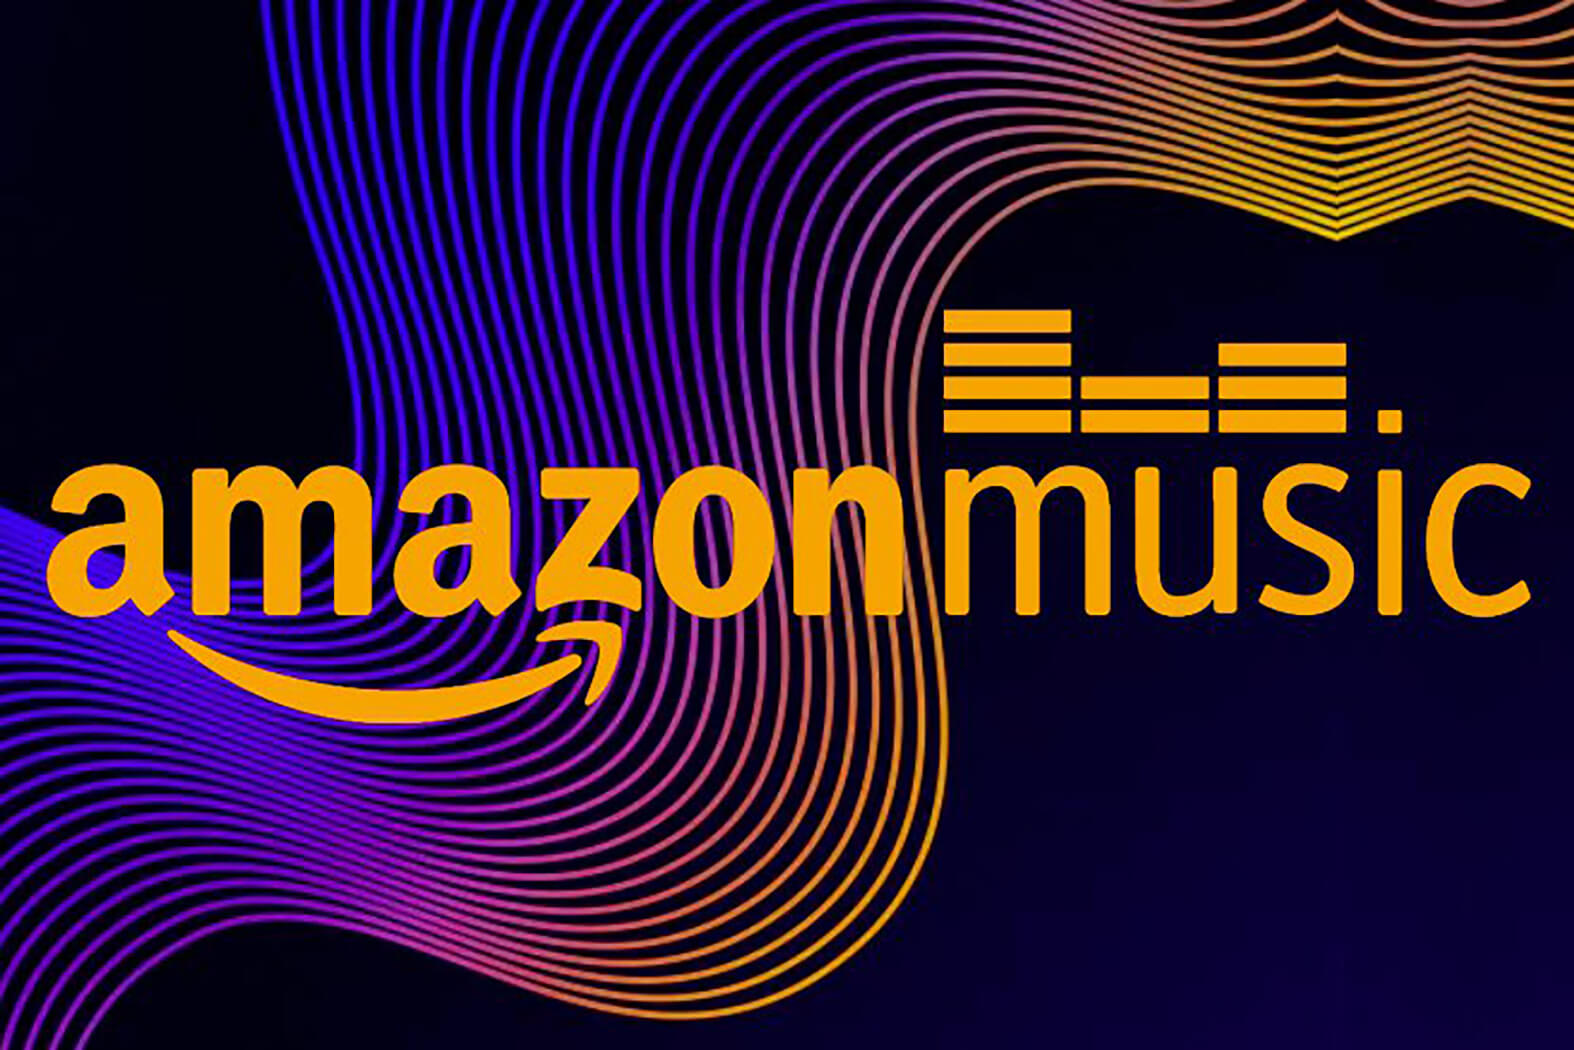 Amazon's new music service trumps Apple and Spotify's streaming quality with 'Ultra HD' tracks